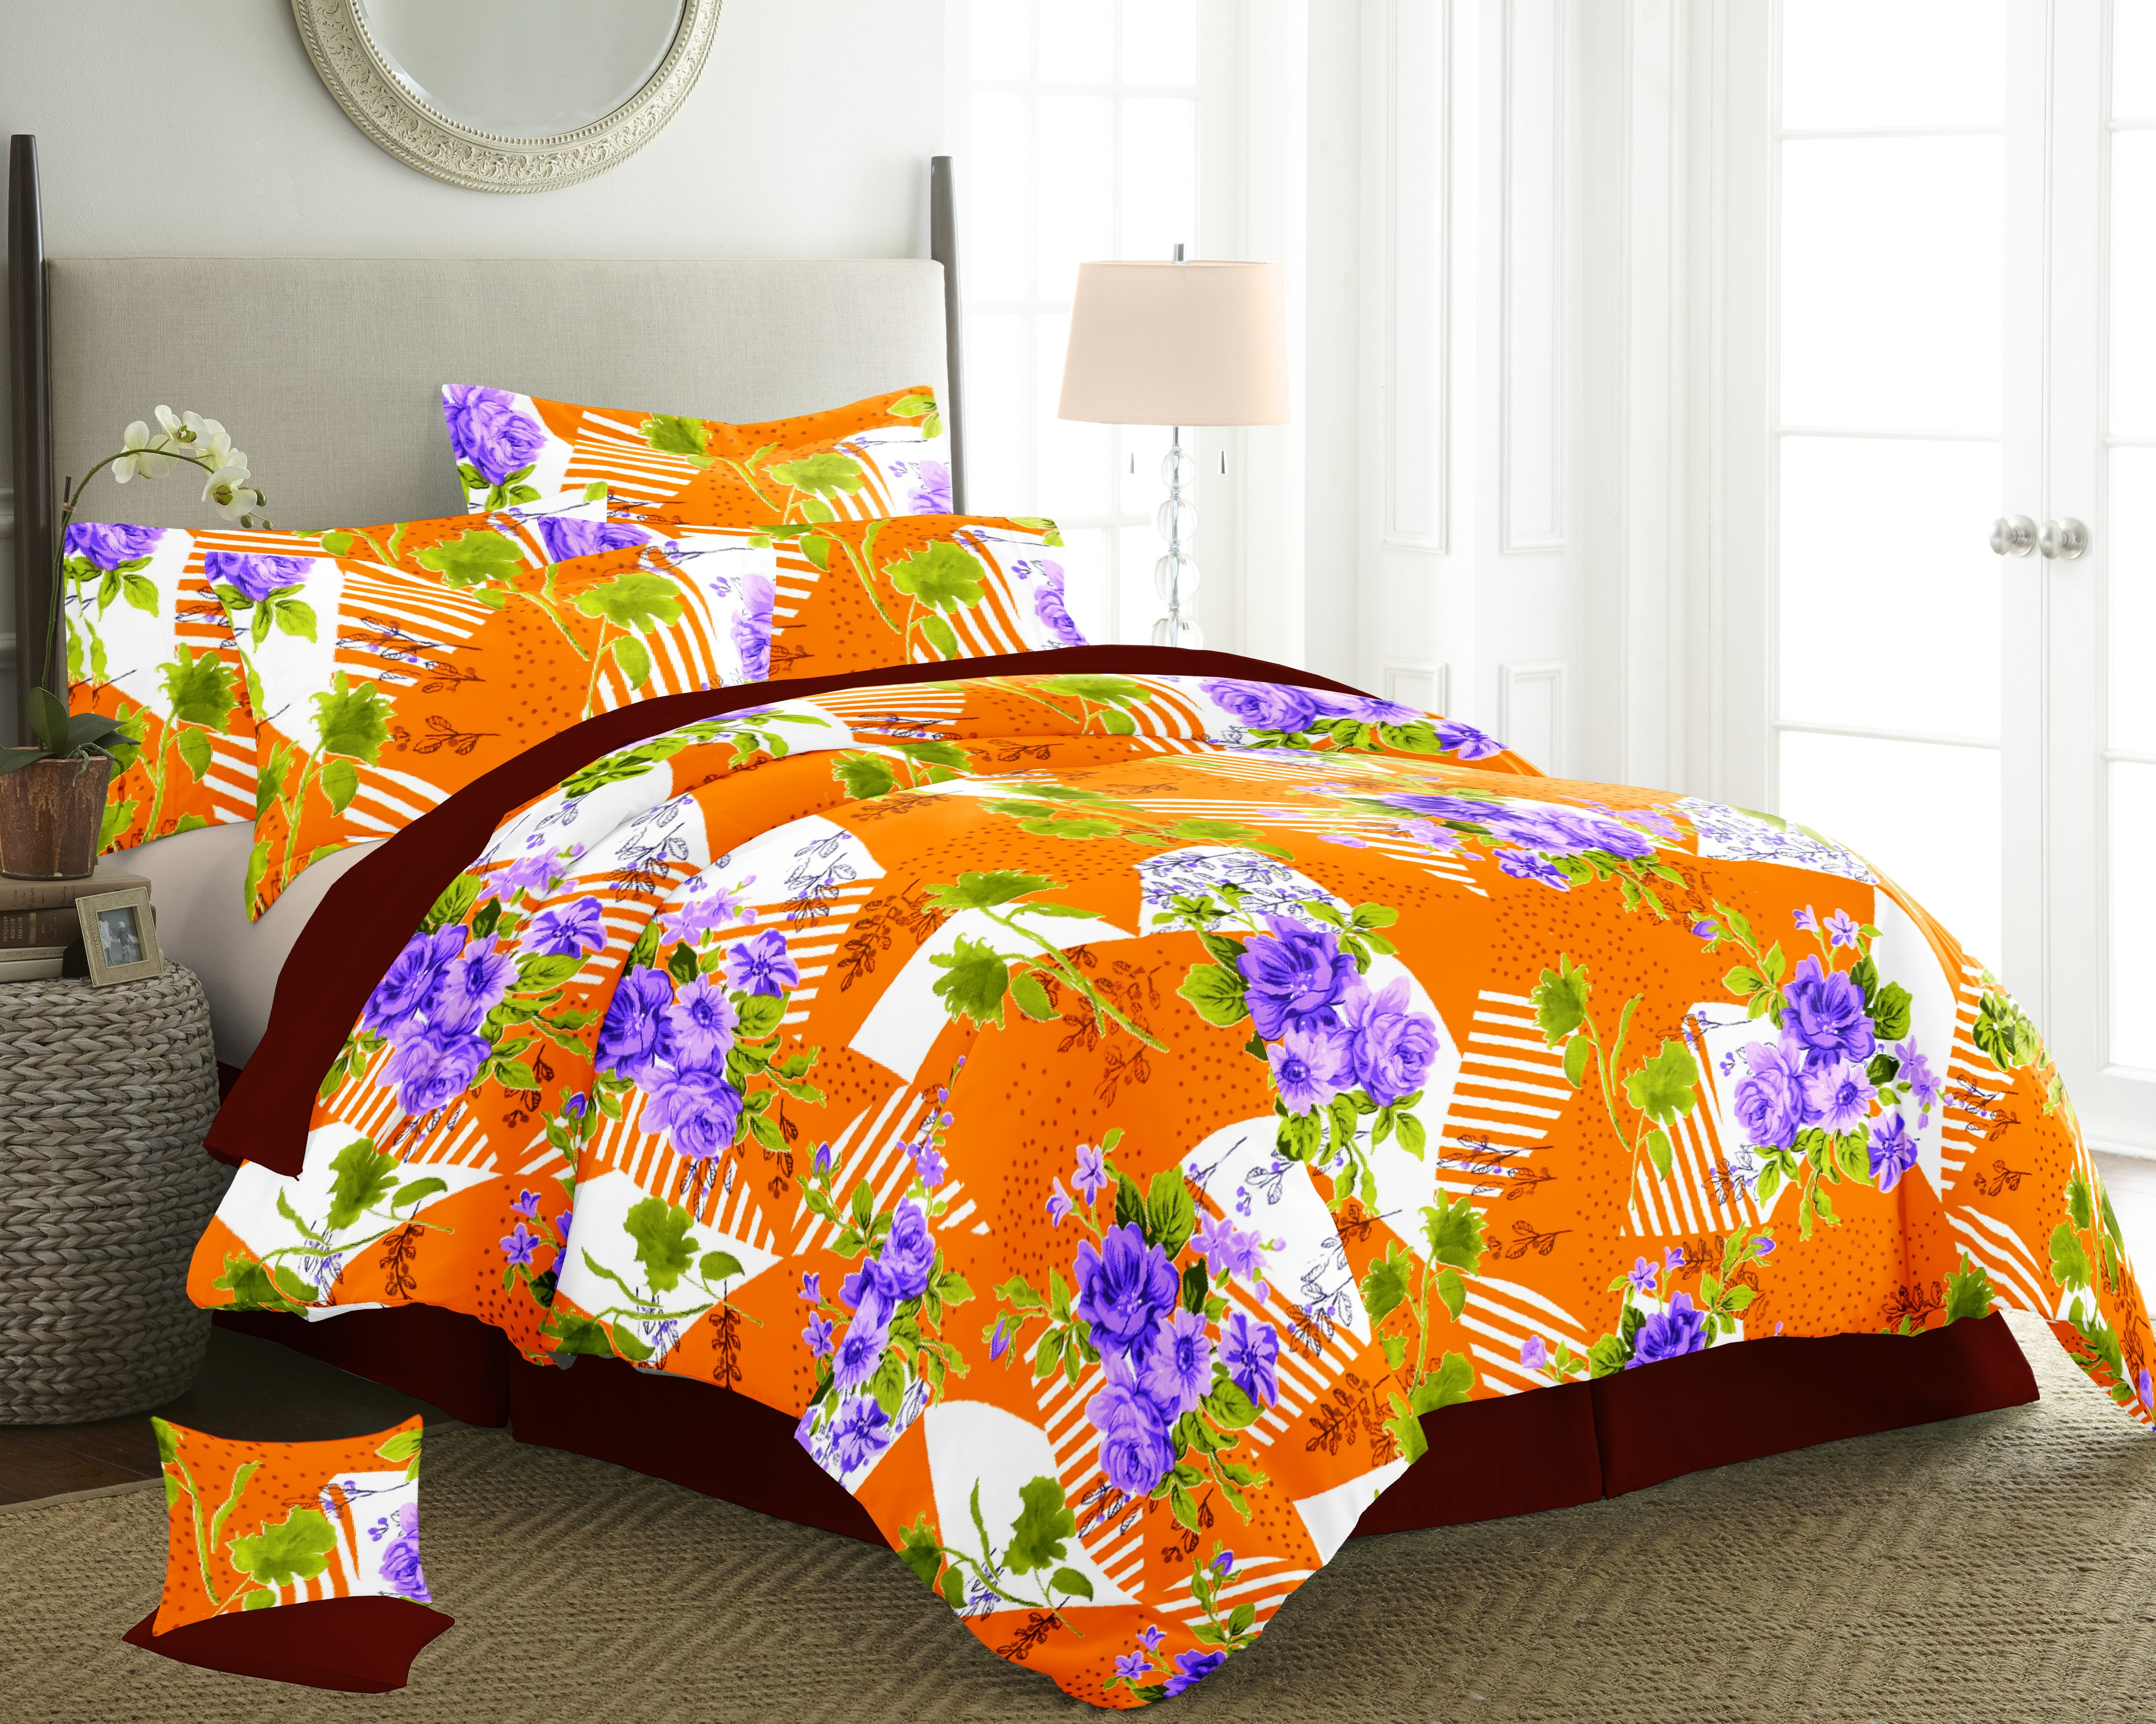 double bed sheets size 225-245 with 2 pilow cowers 46/68 cms 100%cotton